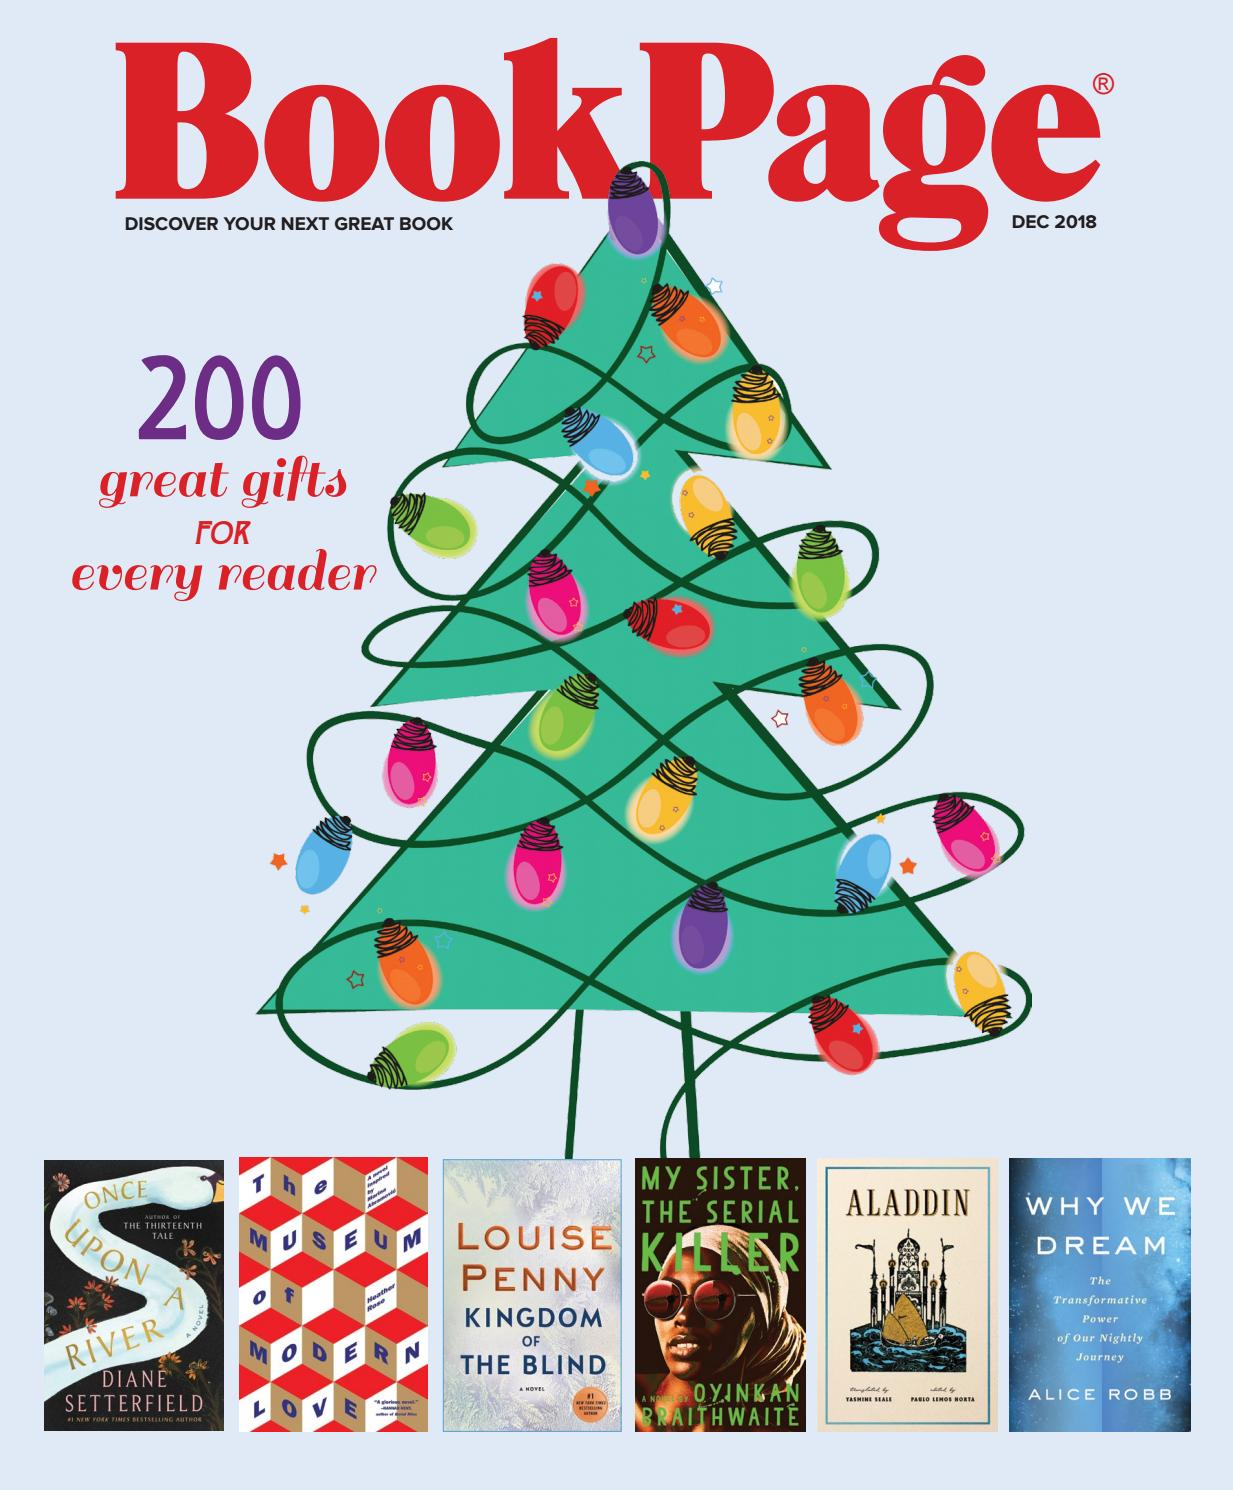 Bookpage December 2018 By Bookpage Issuu